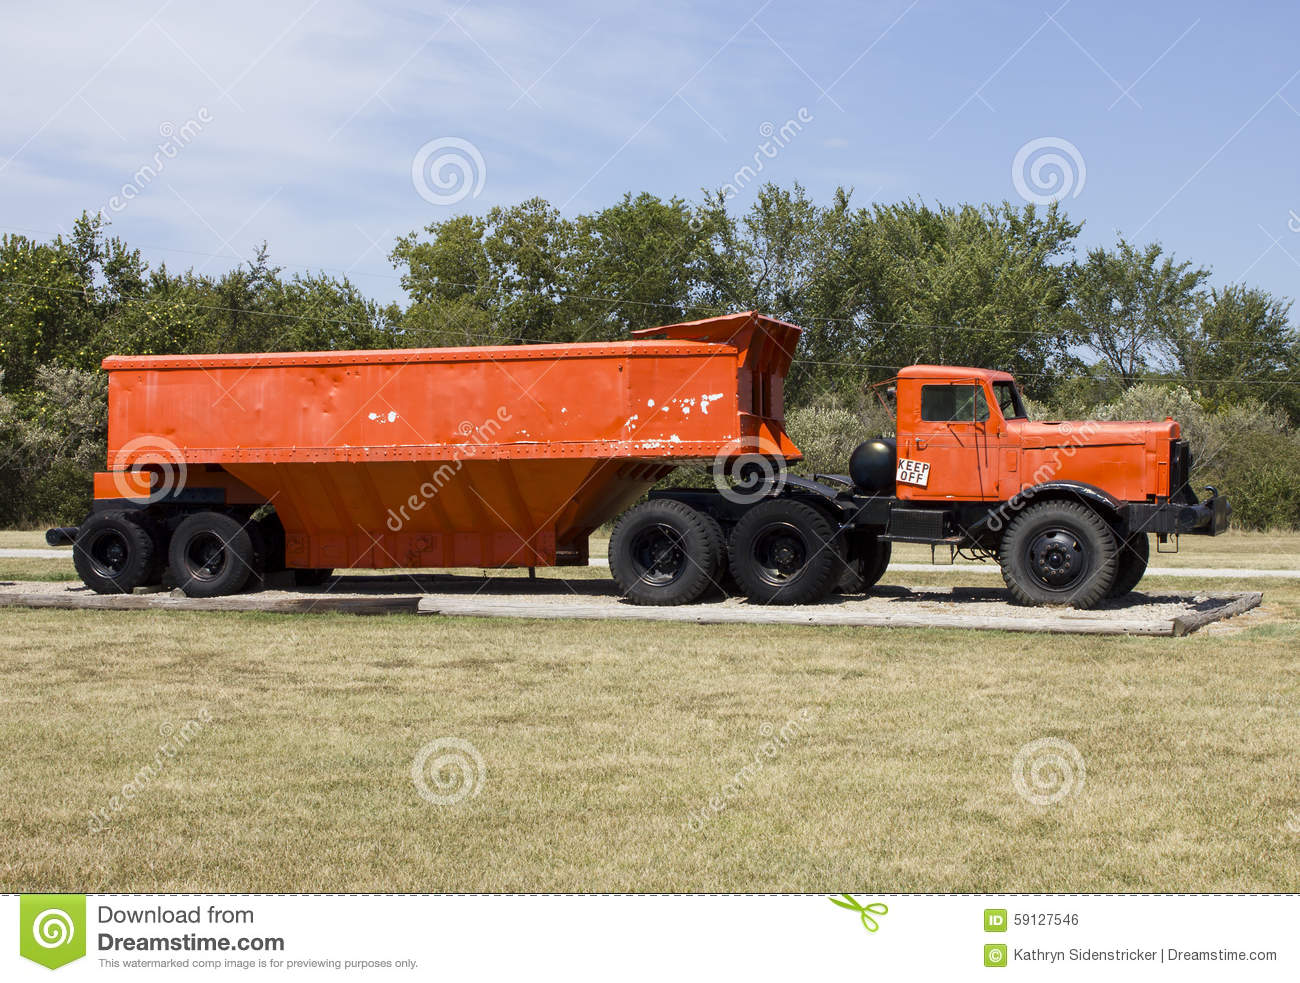 Stock Photo S Hauling Truck Belly Dump Trailer Display Big Brutus Museum West Mineral Kansas Image59127546 also Sand Blasting Tractor Trailers moreover Dump Trailer Control Wiring Diagram together with Truck moreover 331788697526907306. on belly dump trailer